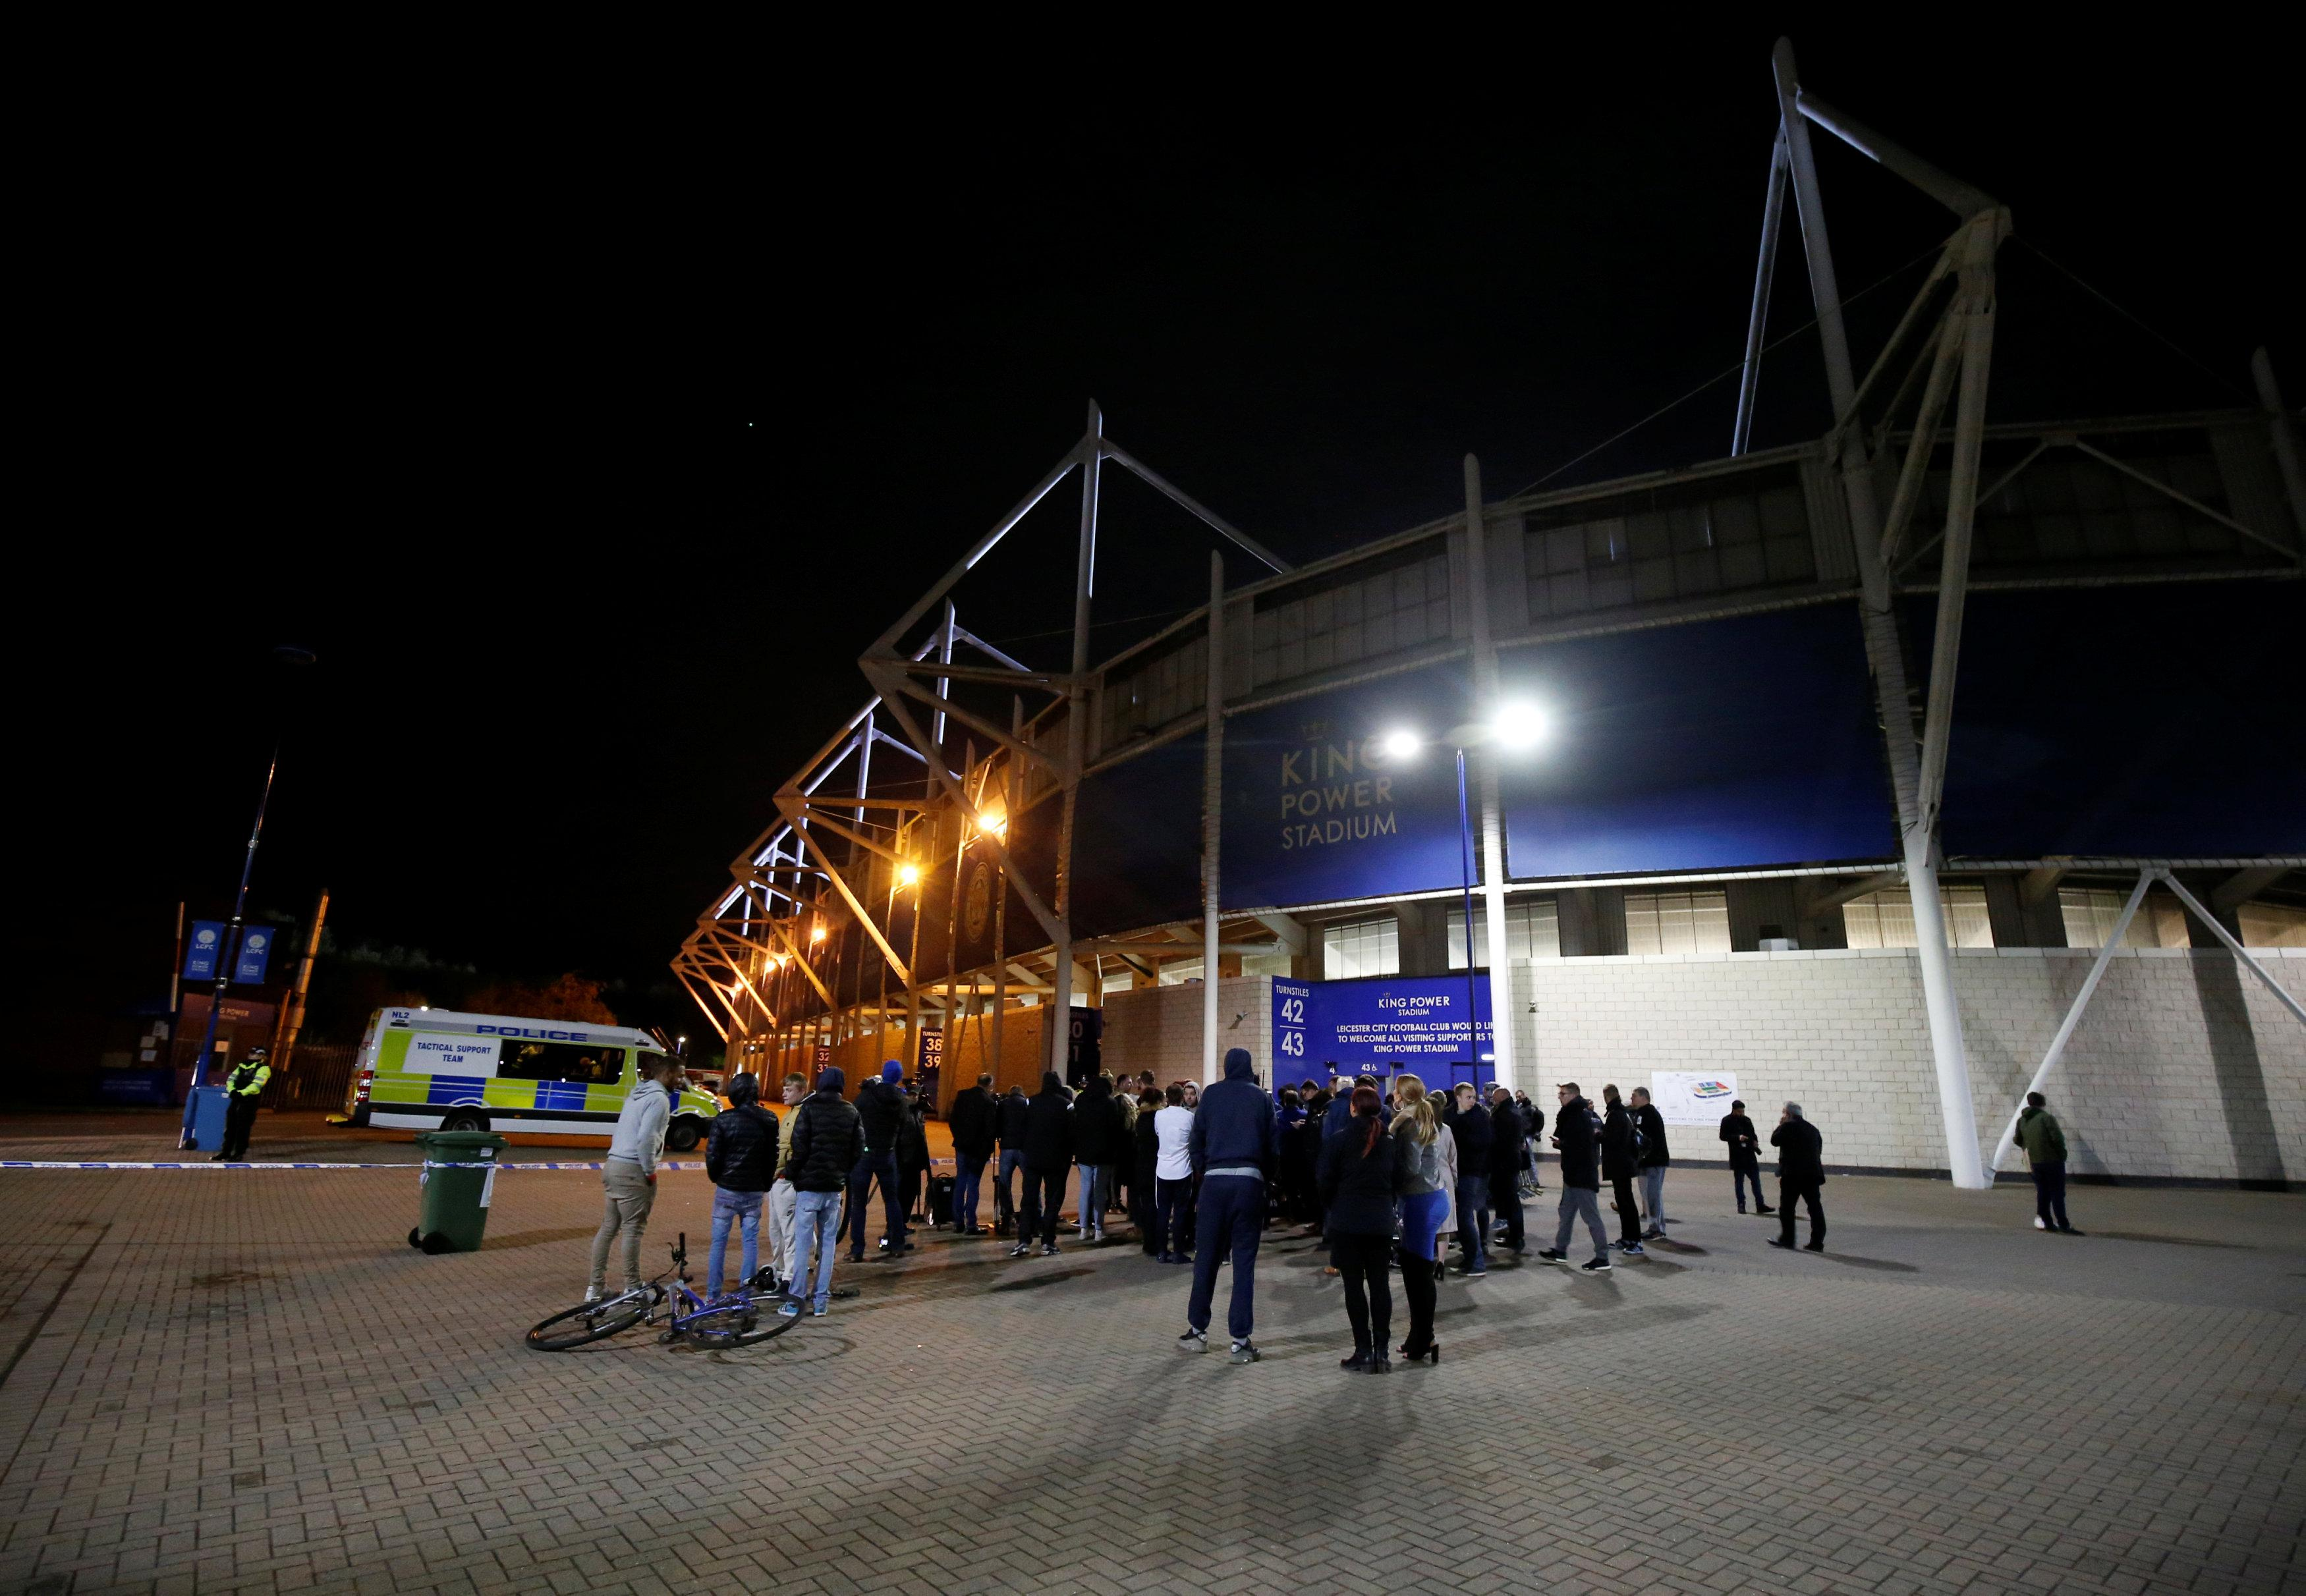 Heartbroken fans gathered outside the ground to wait for news